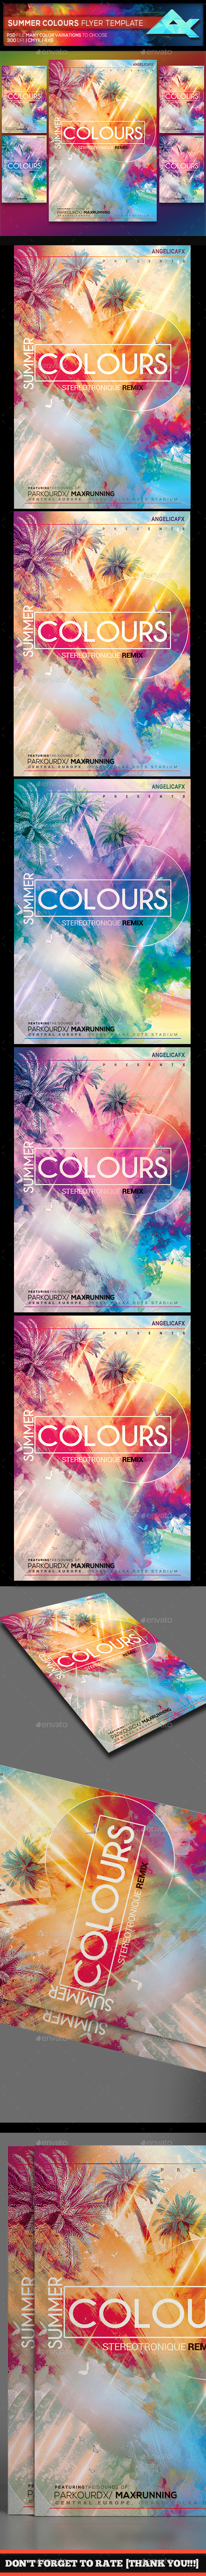 Summer Colour Flyer Template - Events Flyers